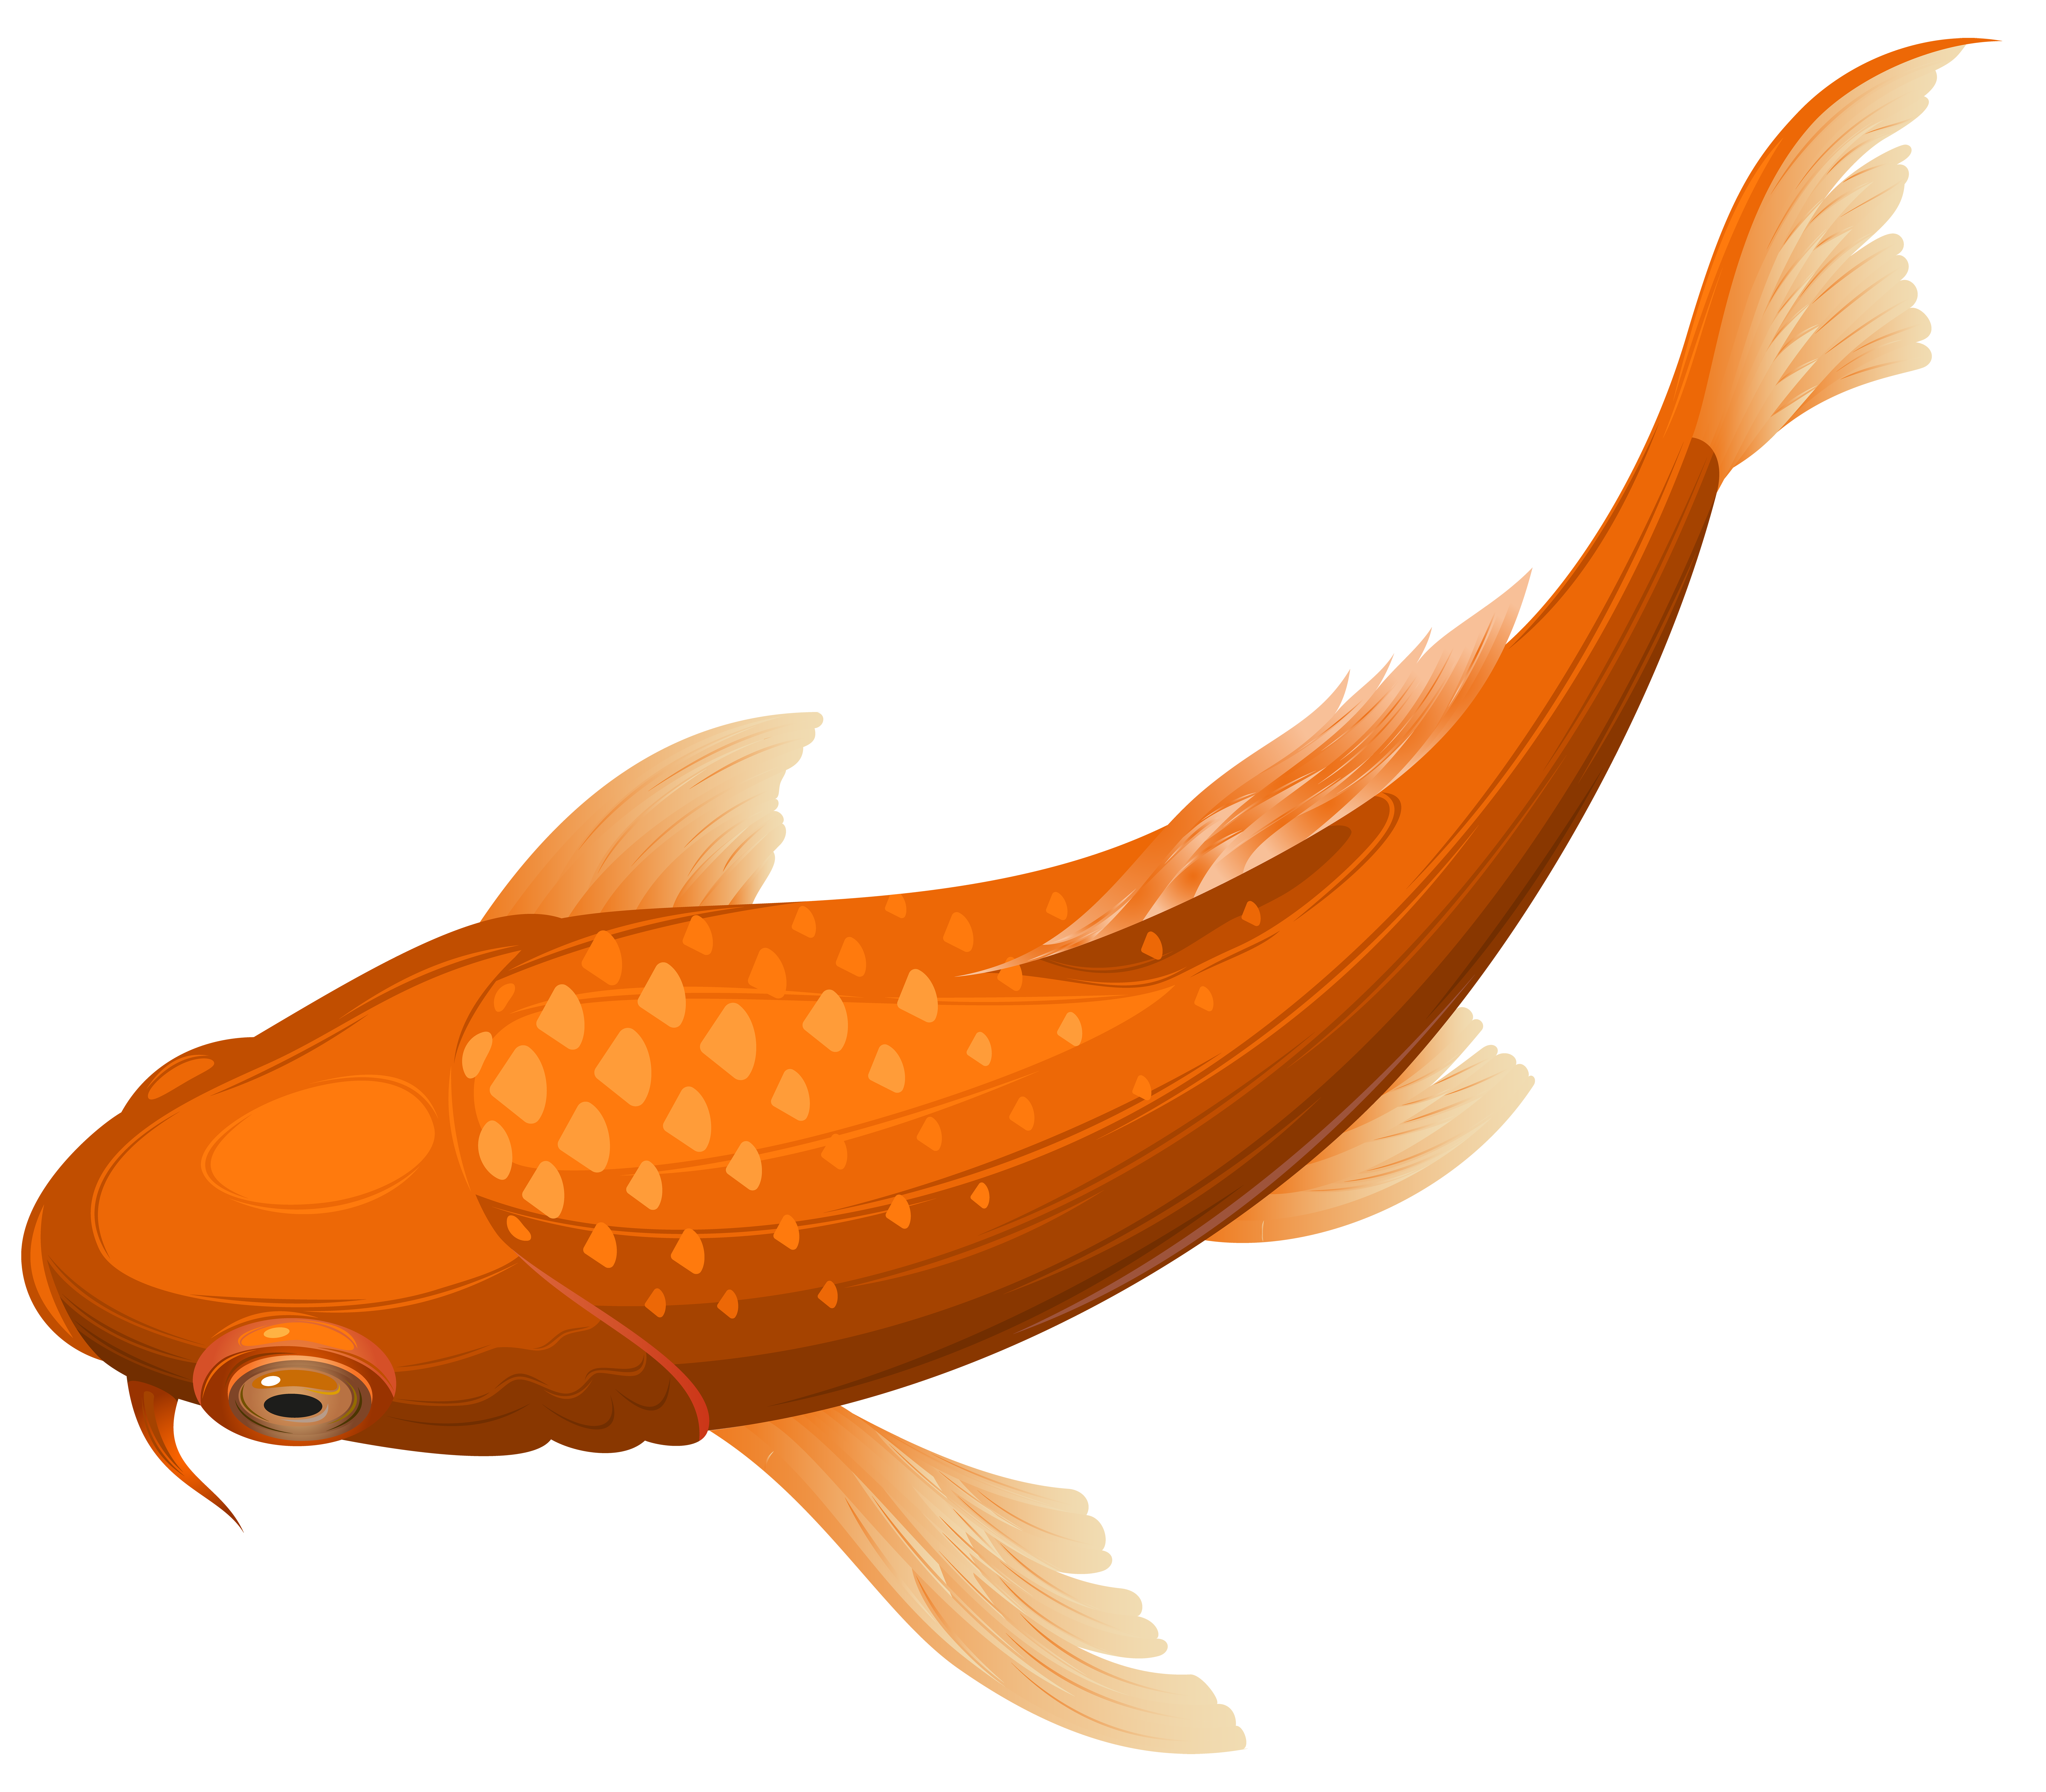 collection of goldfish. Fishing clipart transparent background